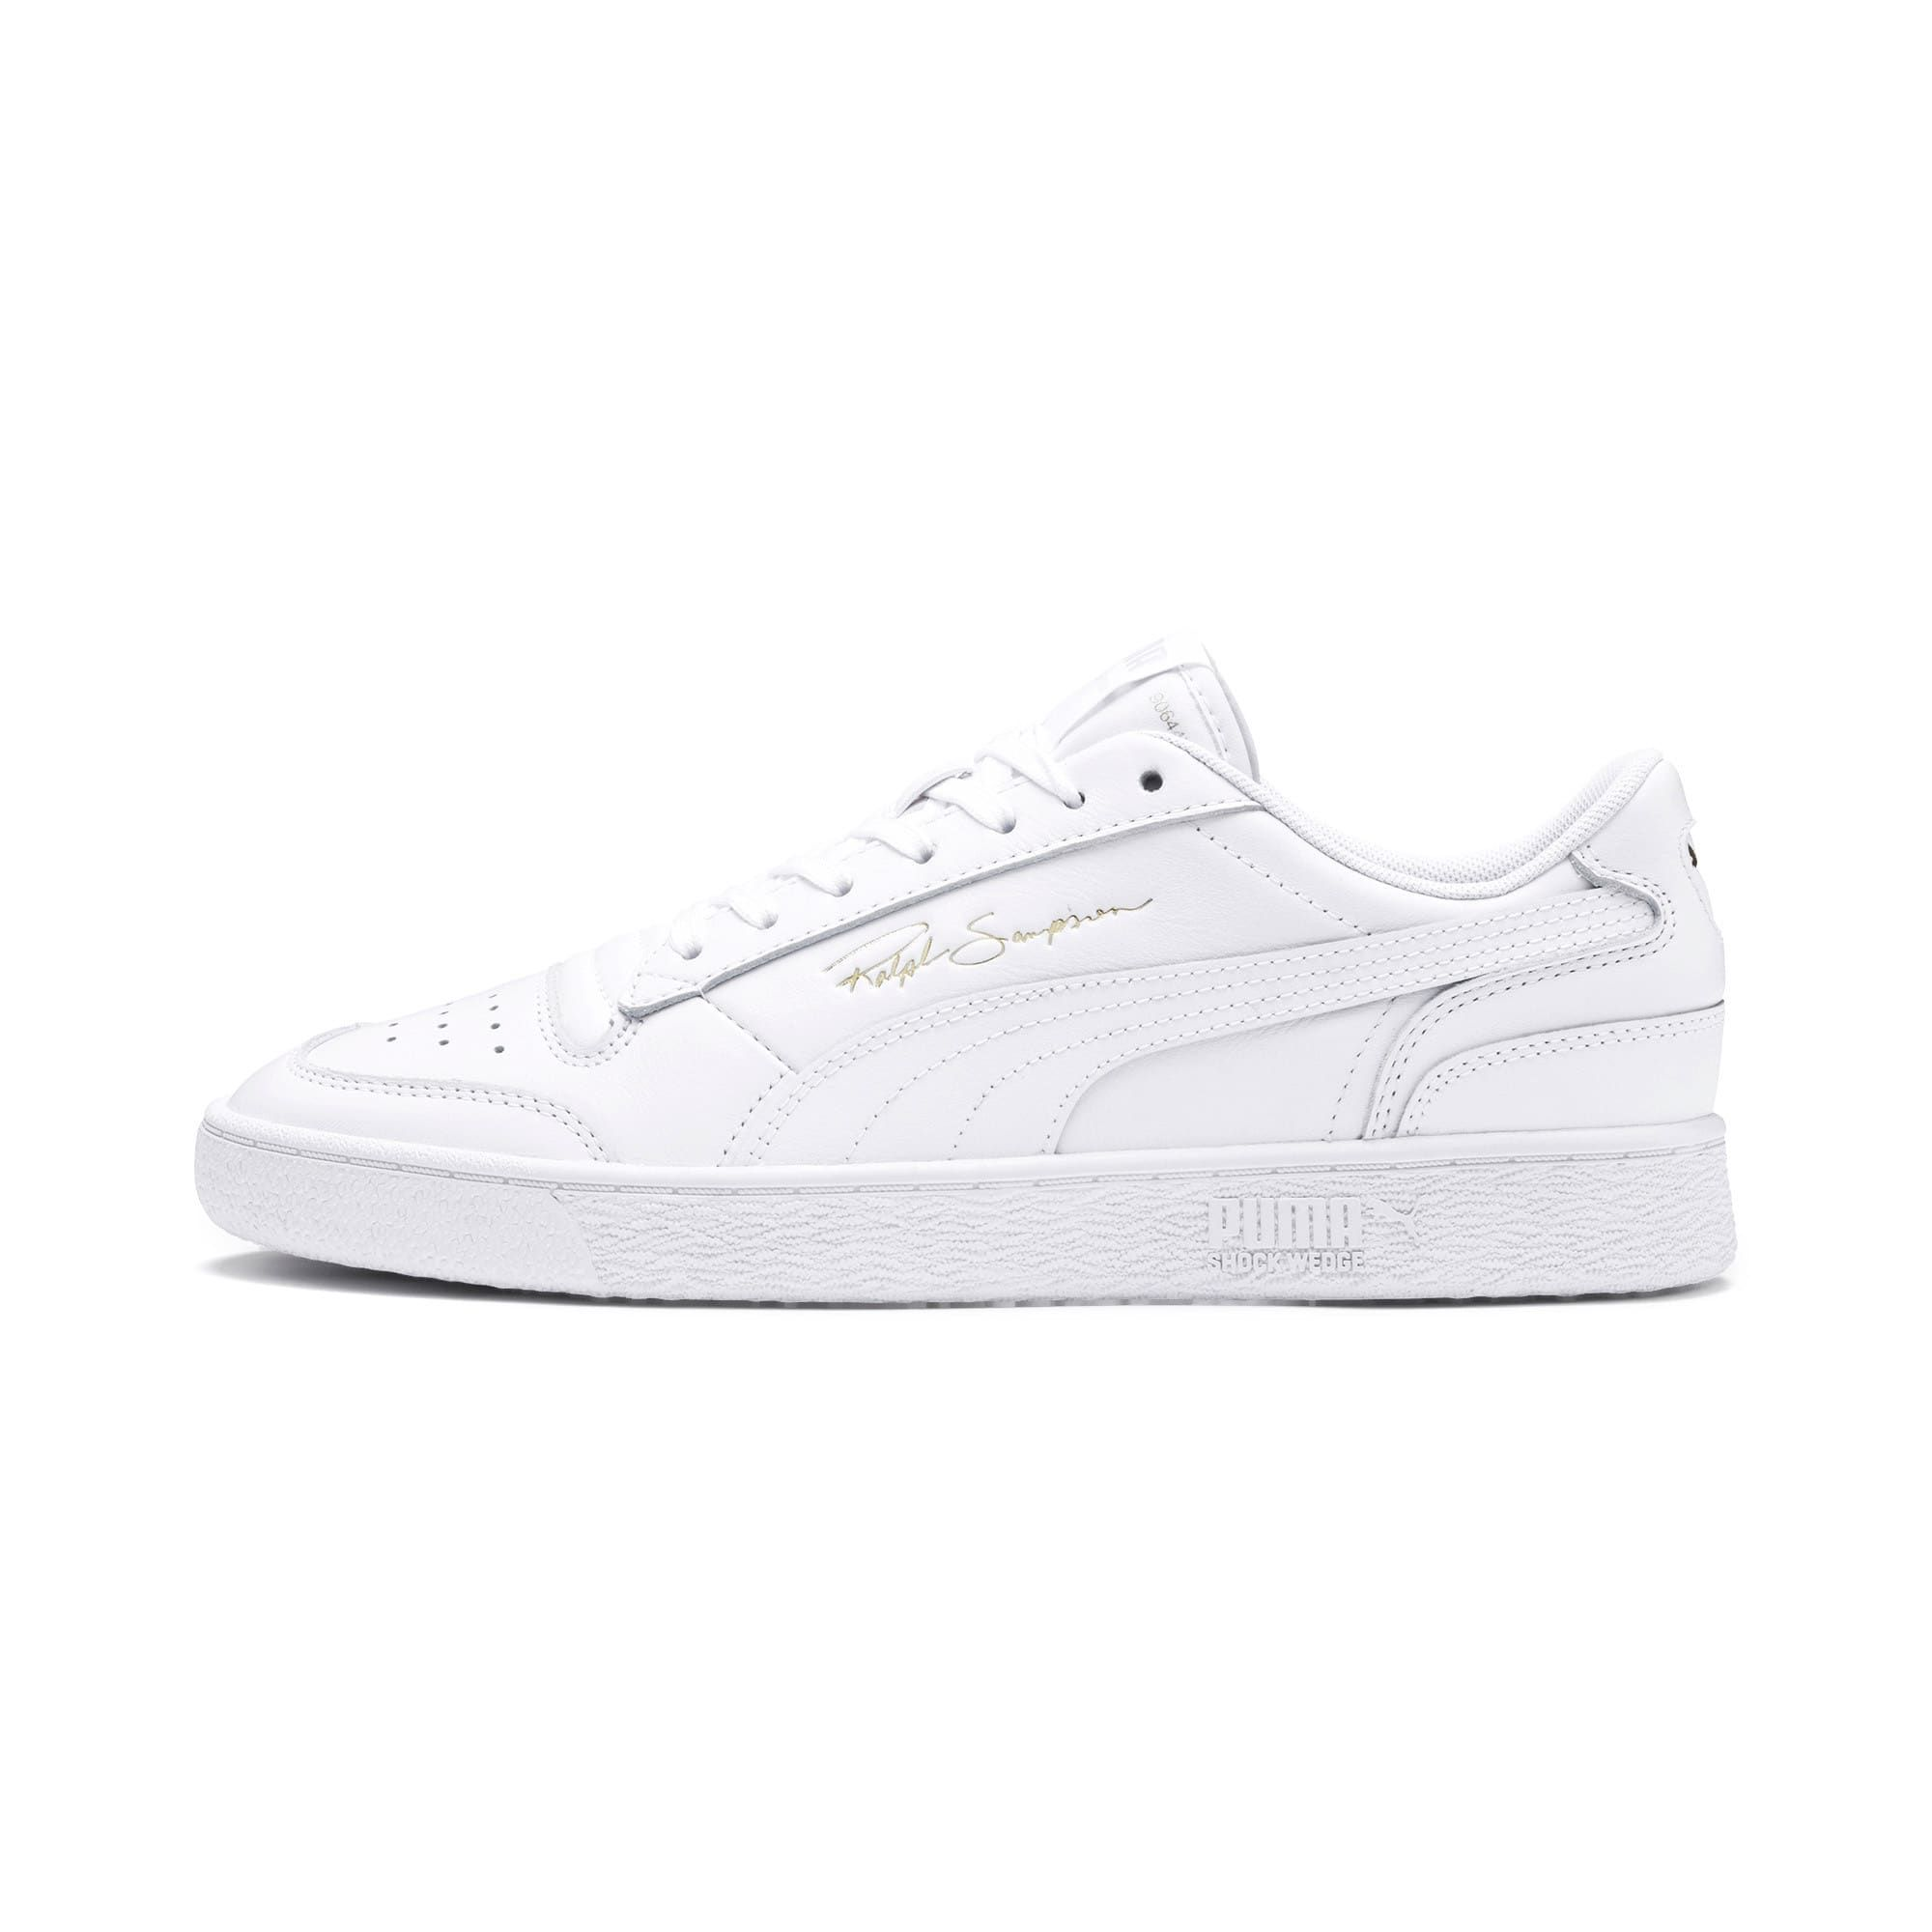 Ralph Sampson Lo Trainers | Puma Wht-Puma Wht-Puma Wht | PUMA Featured | PUMA United Kingdom